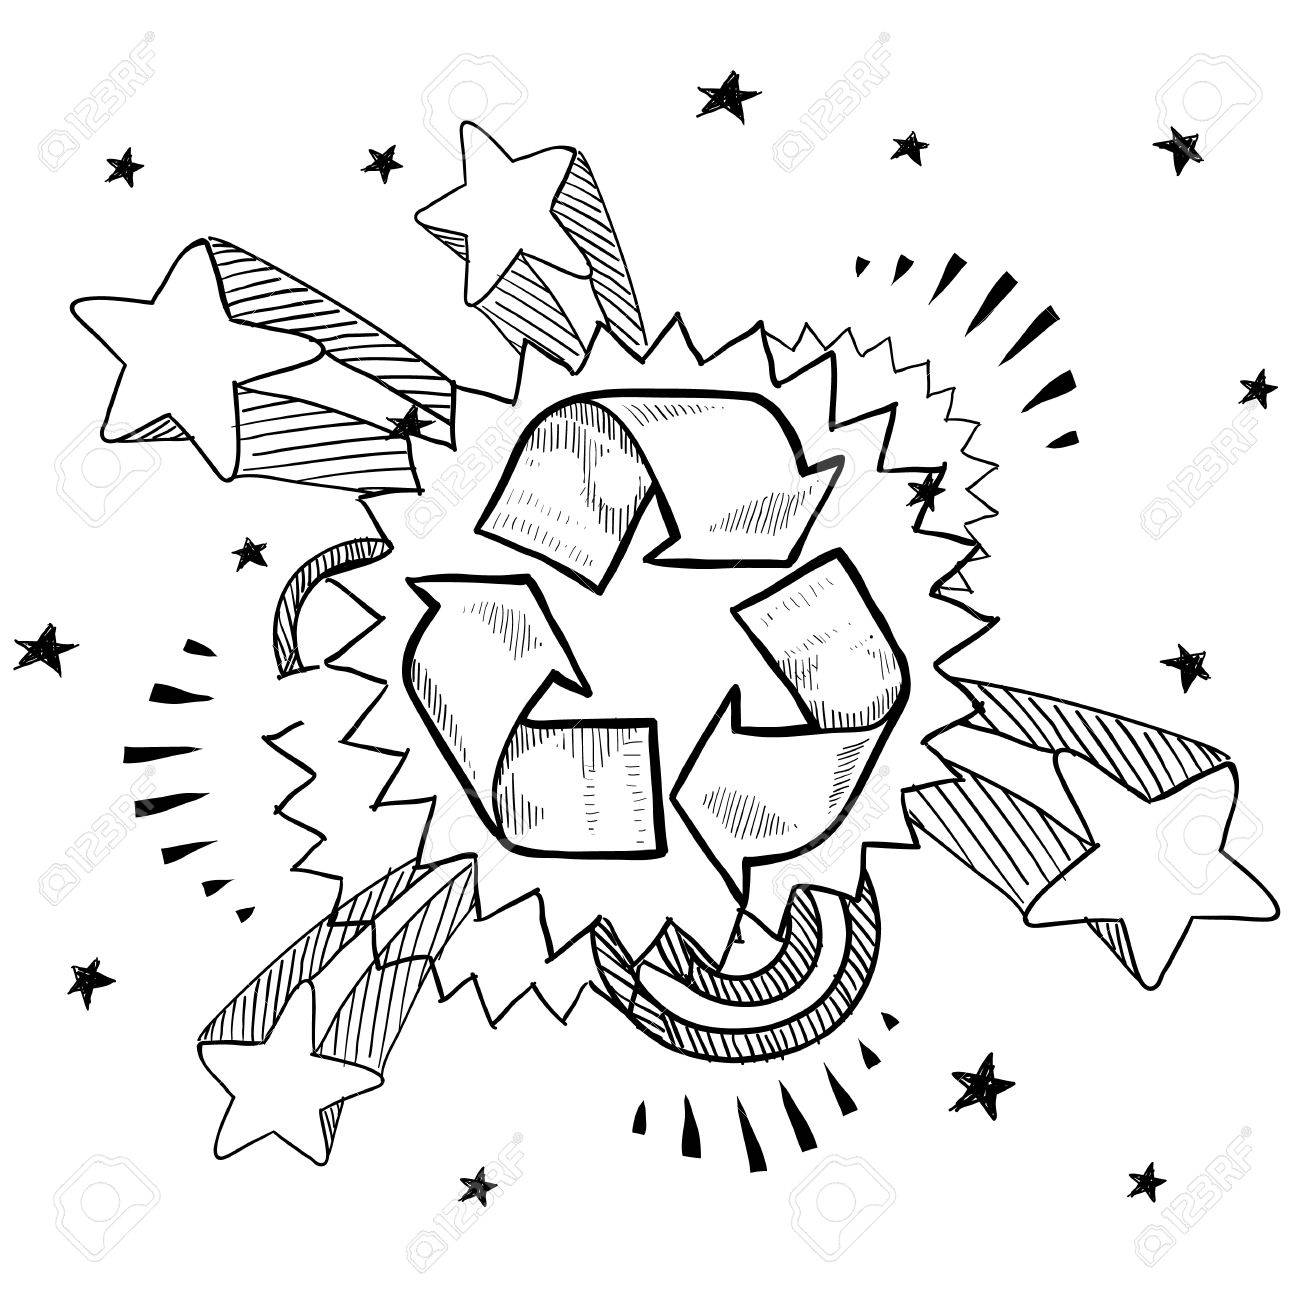 Doodle style recycle symbol illustration with retro 1970s pop background Stock Vector - 13258731